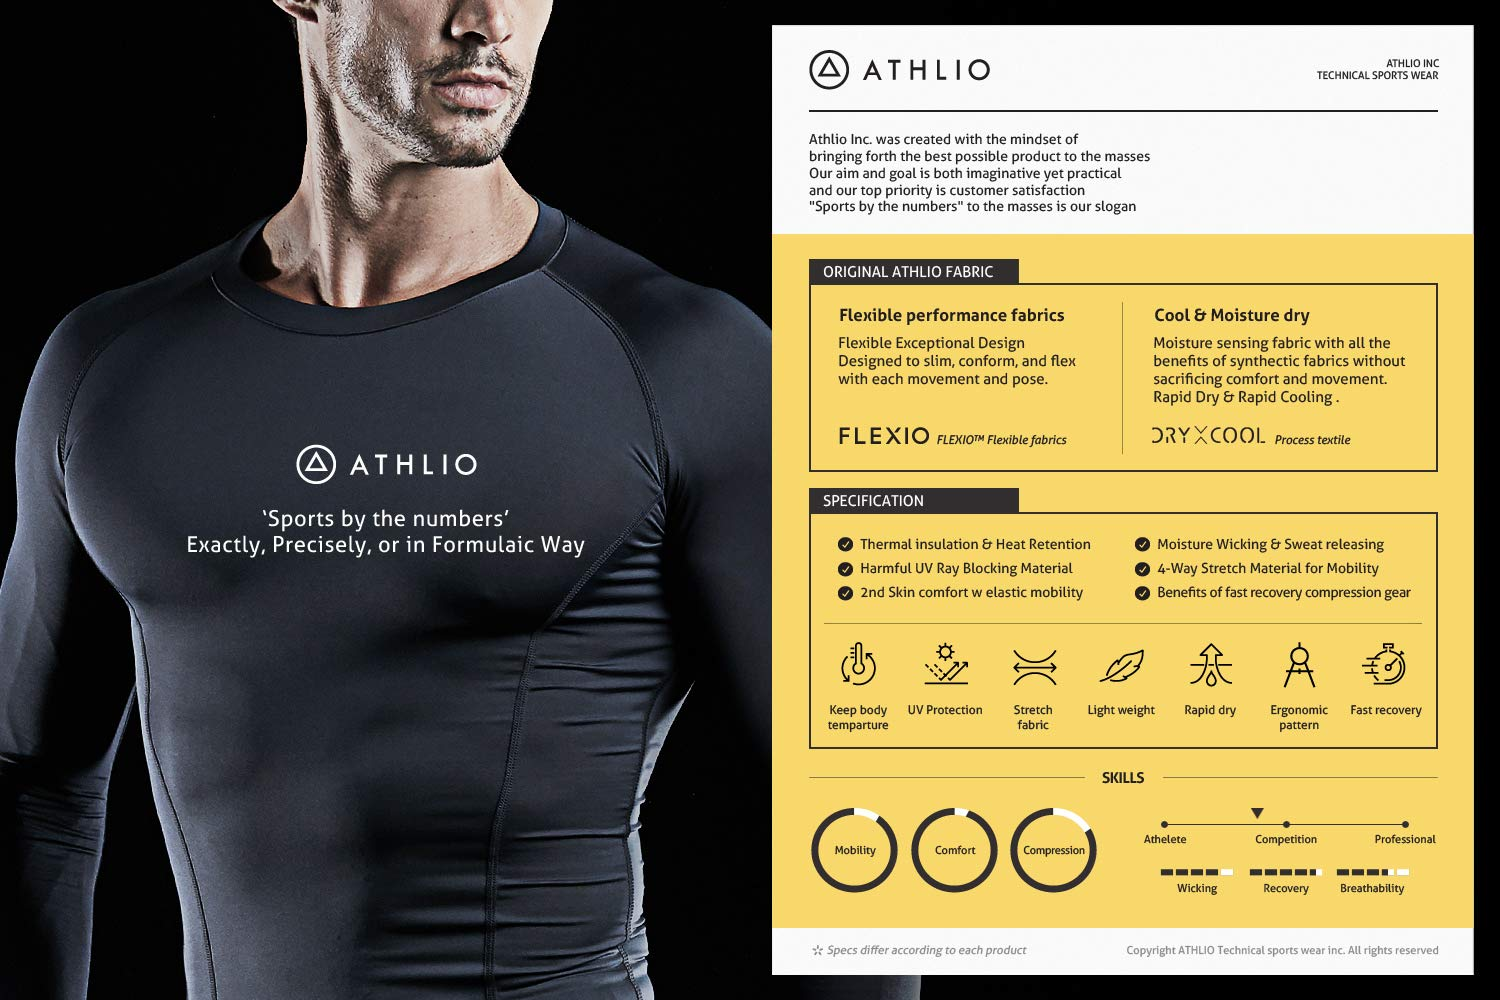 ATHLIO AO-BLS01-KCR_Large Men's (Pack of 3) Cool Dry Compression Long Sleeve Baselayer Athletic Sports T-Shirts Tops BLS01 by ATHLIO (Image #3)